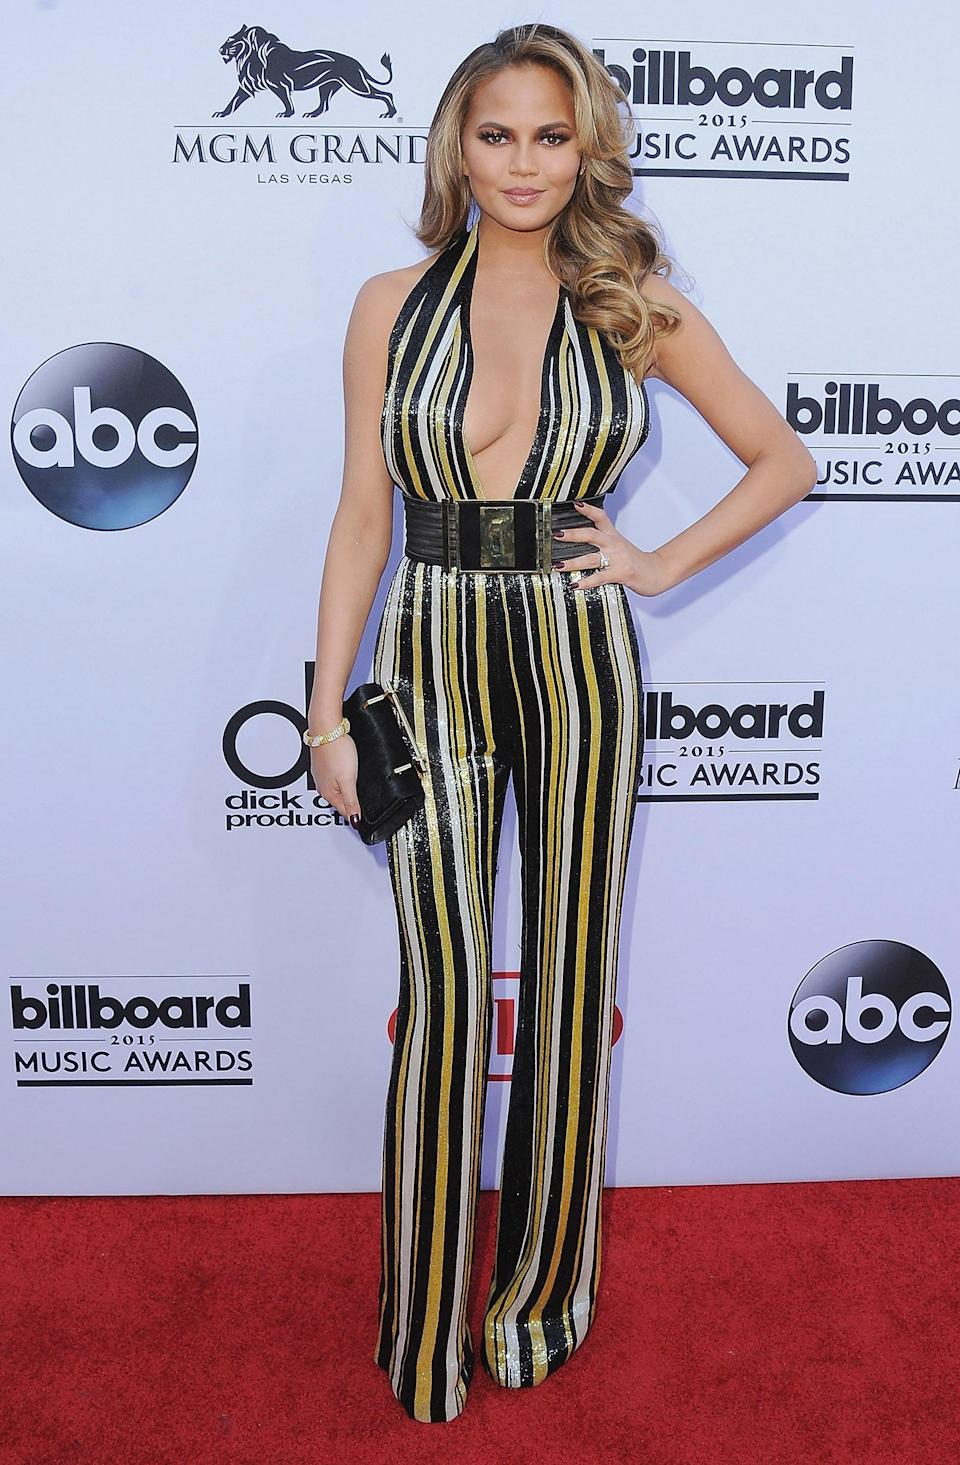 <p>The outspoken model also wore a jumpsuit at the 2015 Billboard Music Awards, but one with a flashy pattern. (Photo: Jon Kopaloff/FilmMagic) </p>